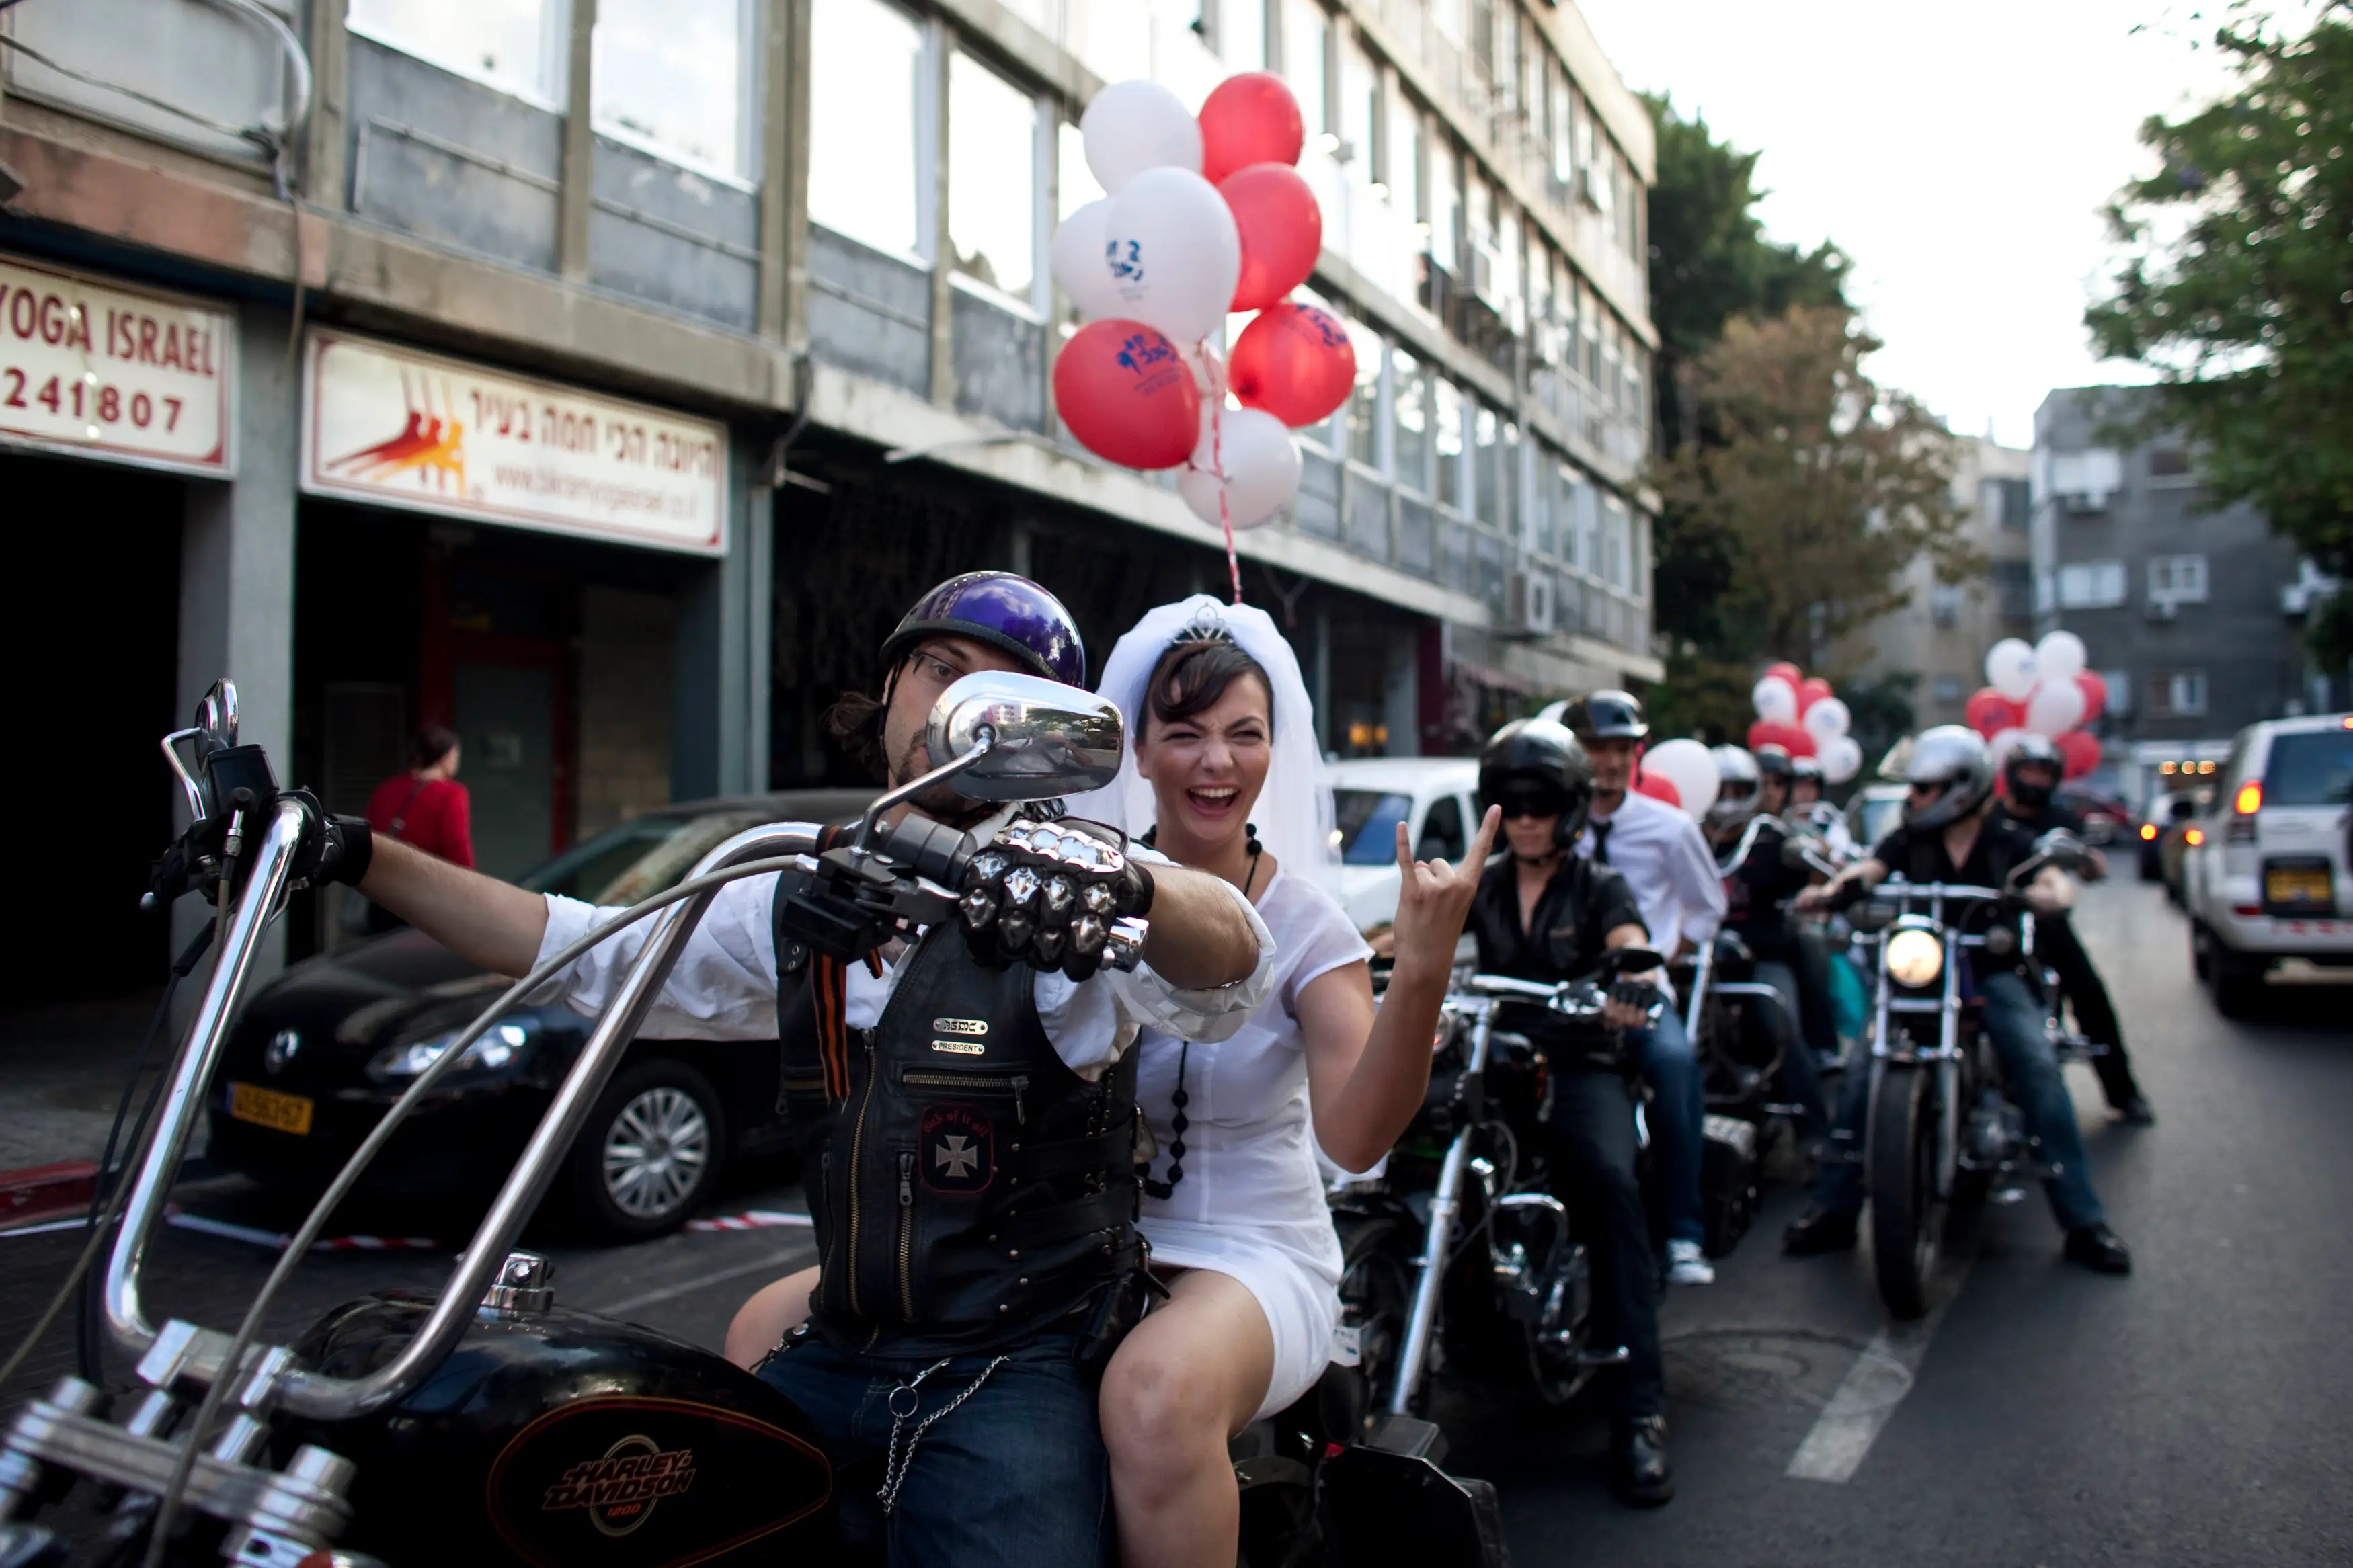 Yulia Tagil sits on the backseat of a bike as she arrives for her wedding ceremony in Tel Aviv.